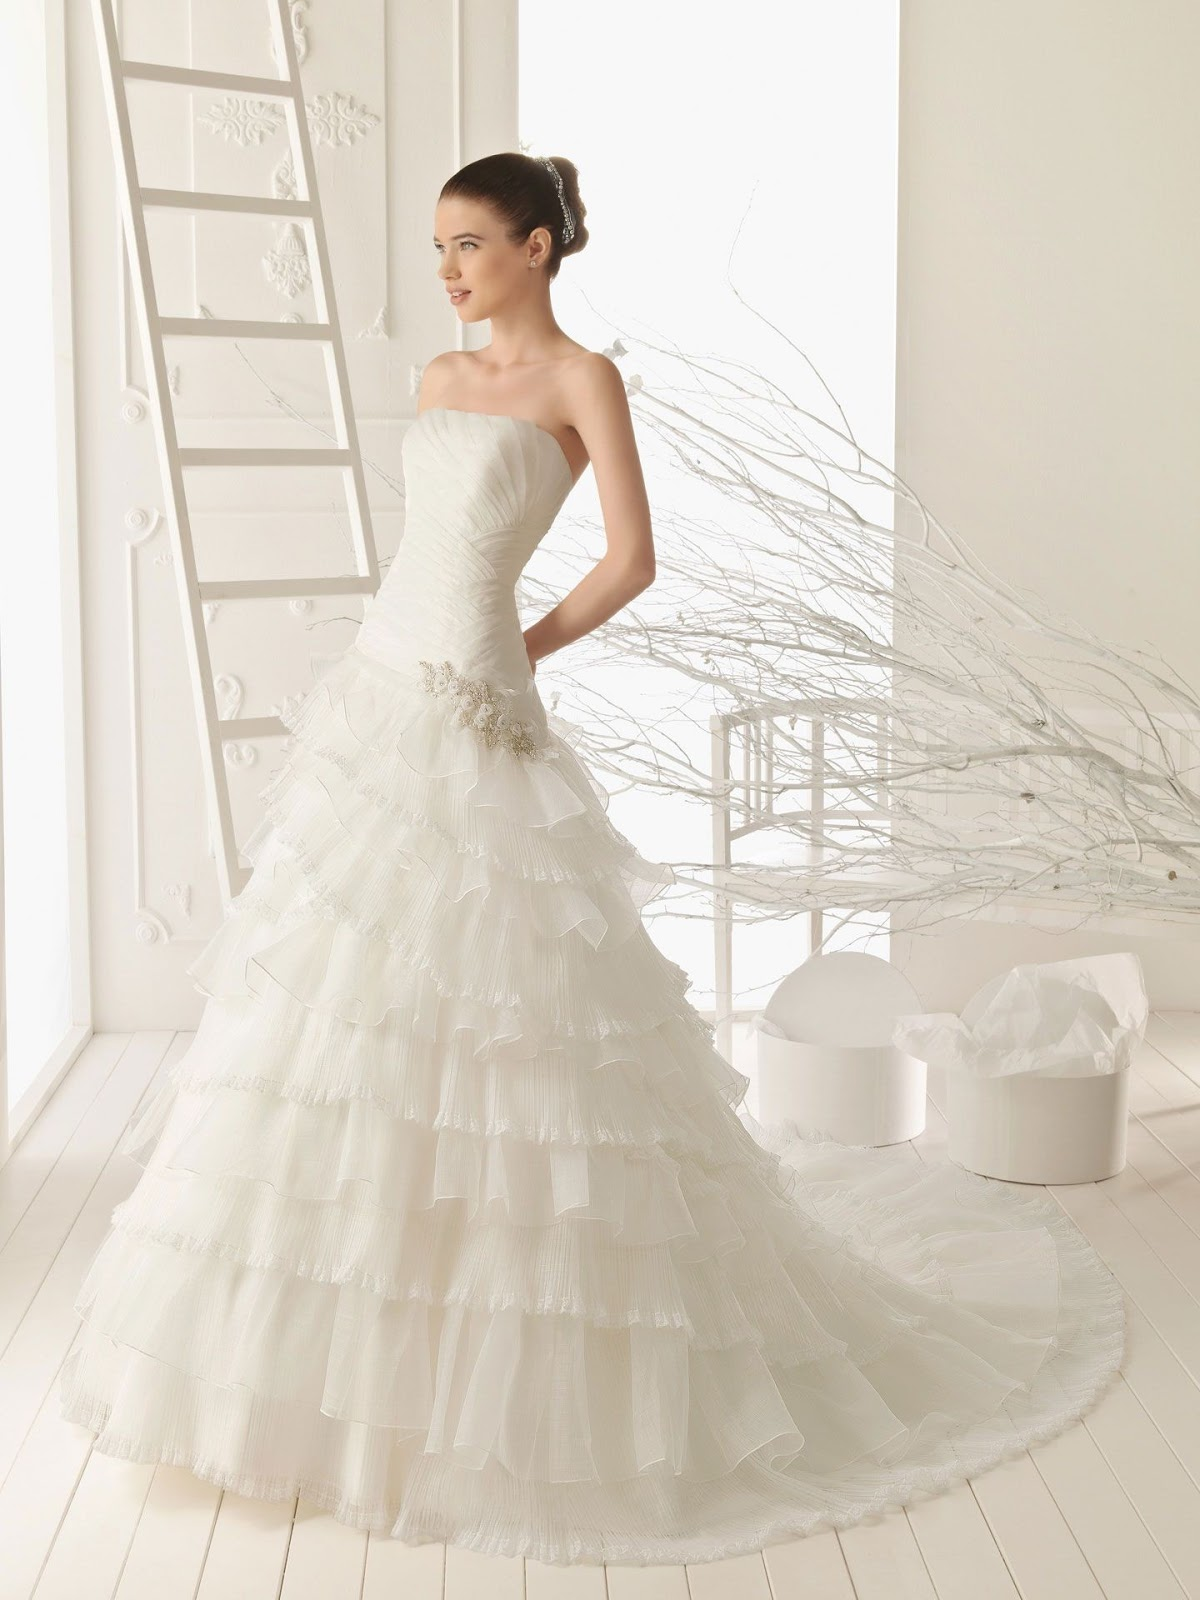 A-line Wedding Dress Is The Best Choice For You